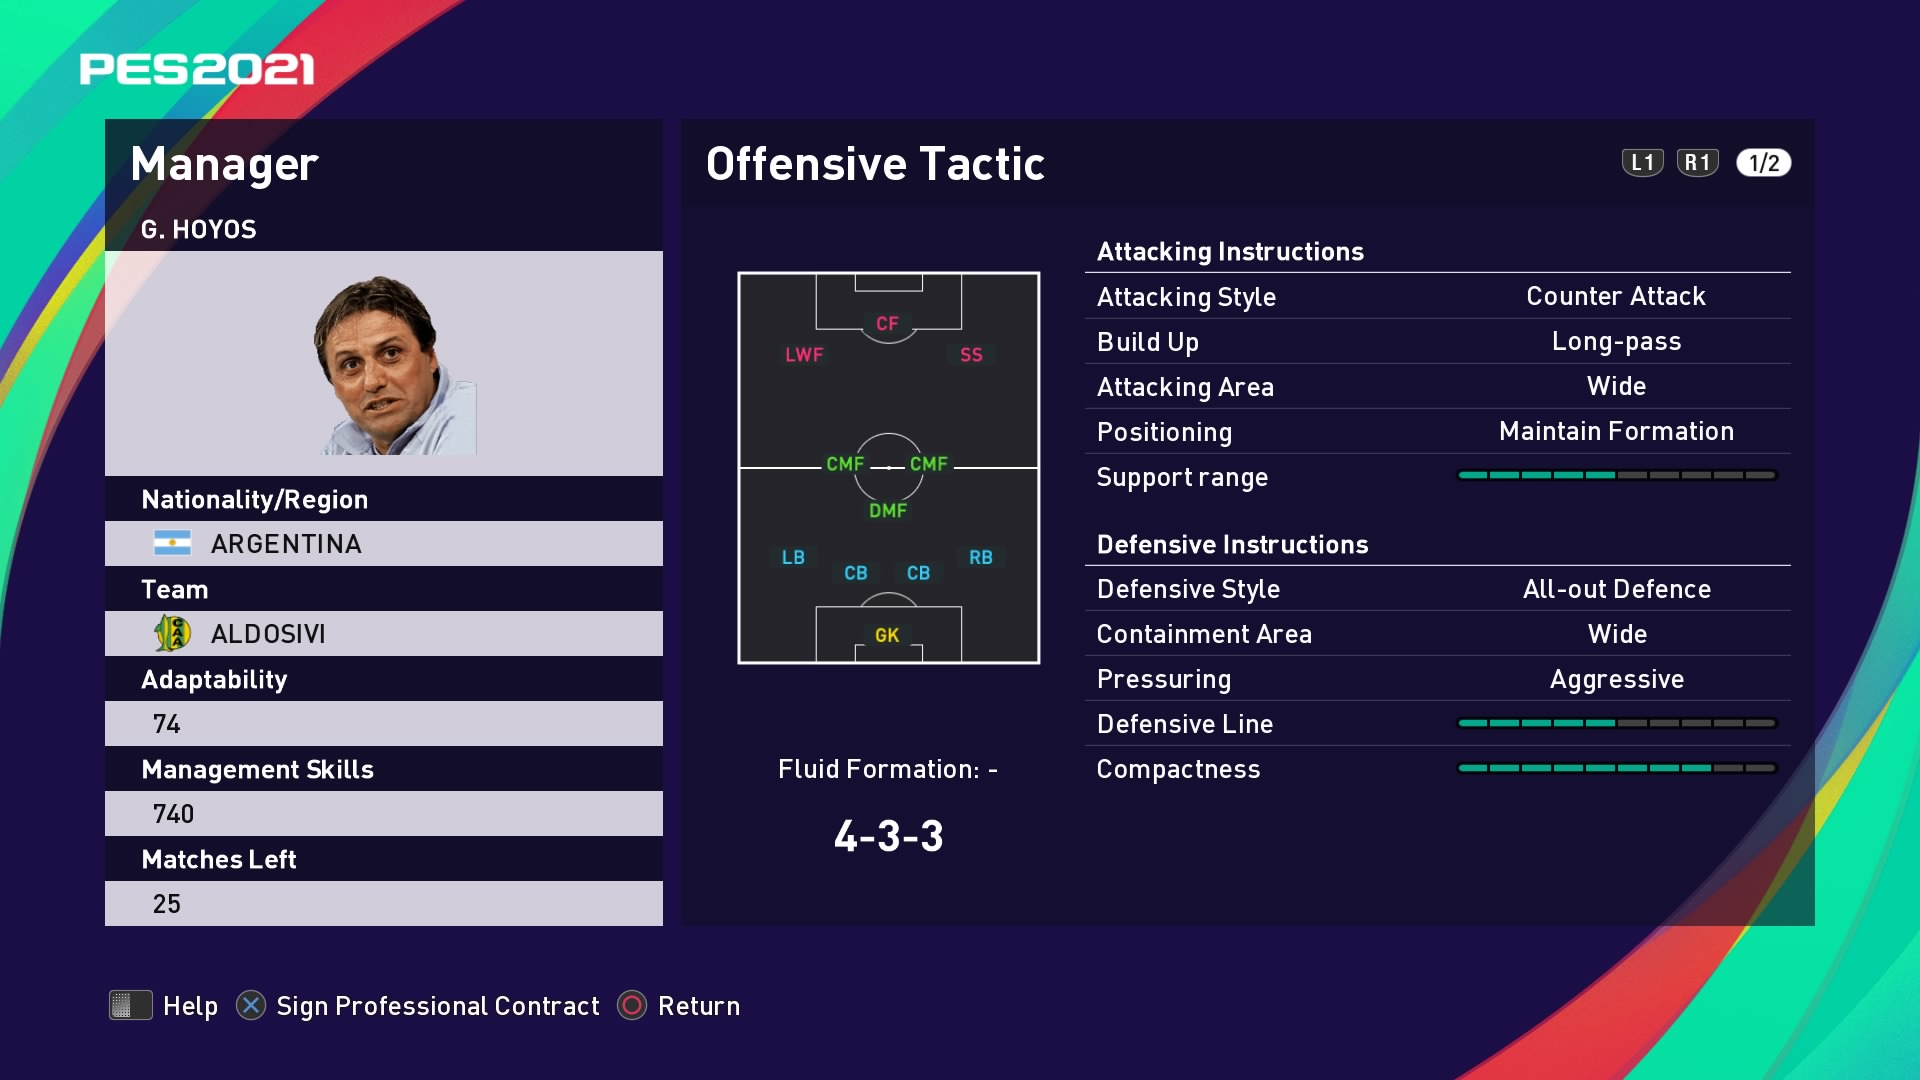 G. Hoyos (Guillermo Hoyos) Offensive Tactic in PES 2021 myClub